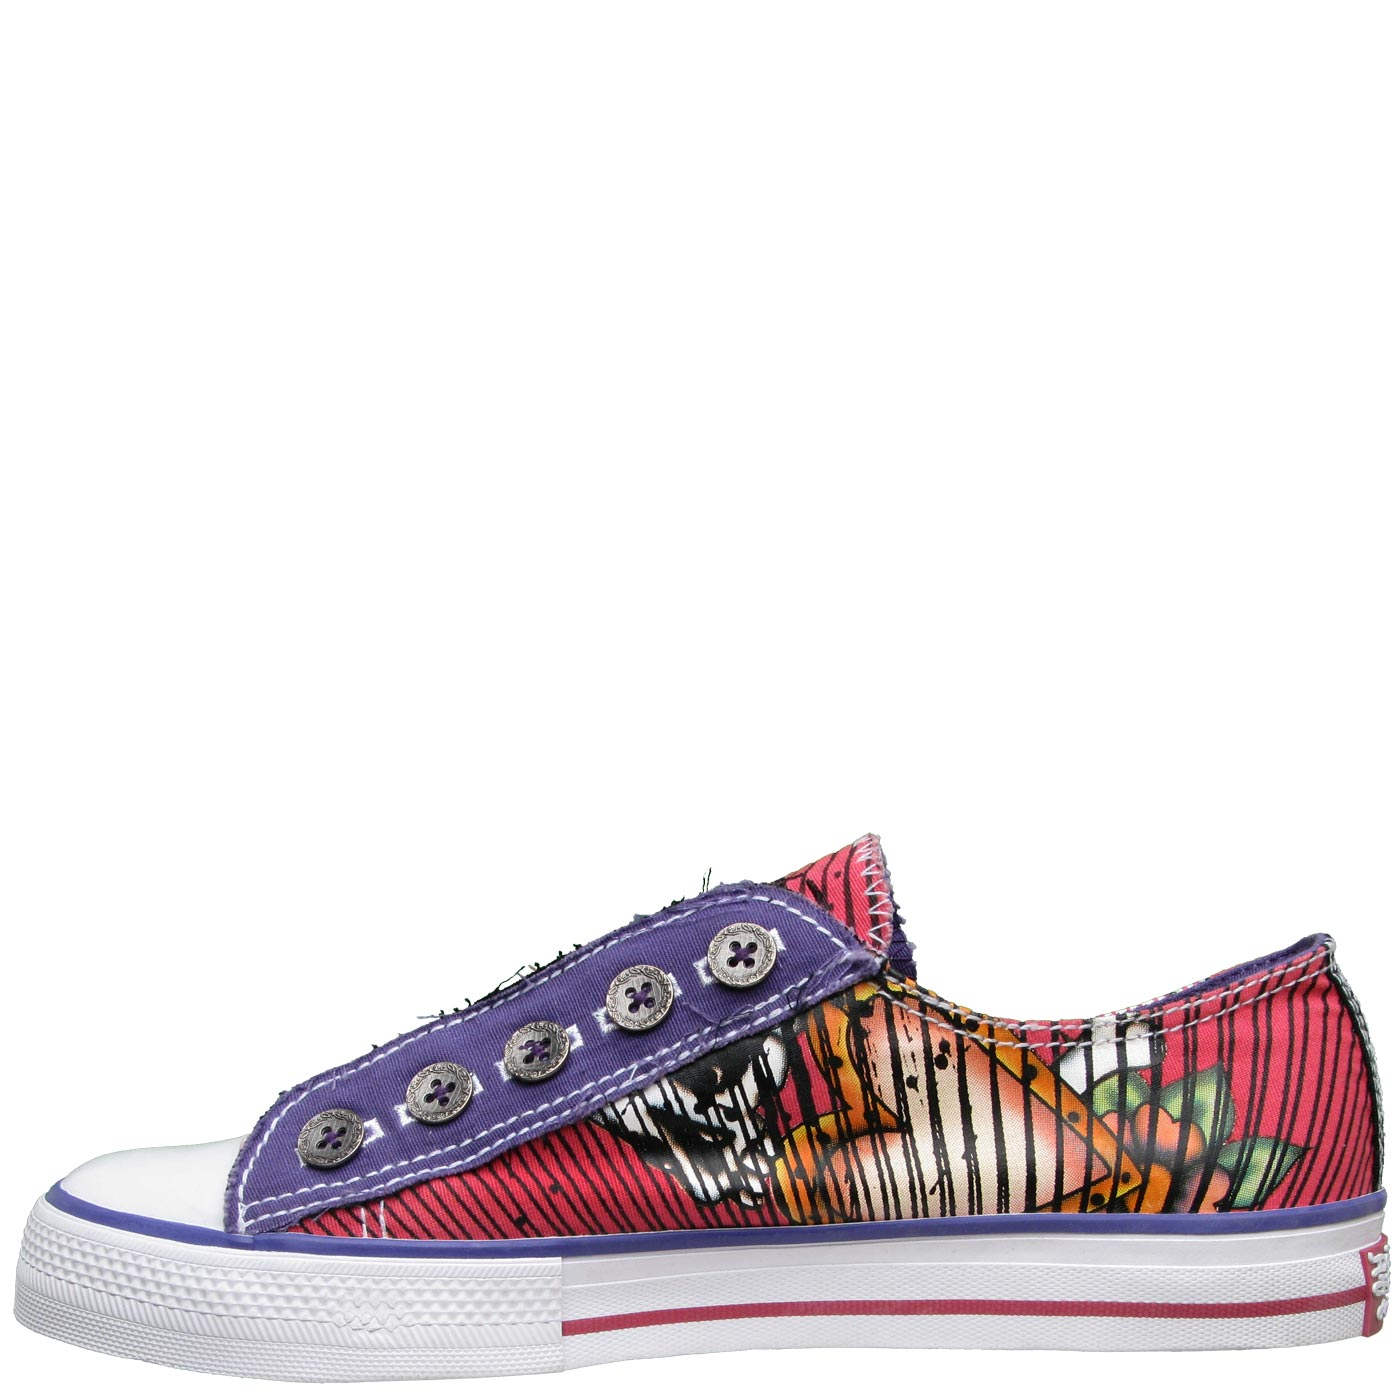 Ed Hardy Lowrise Harajuku Shoe for Women - Fuschia